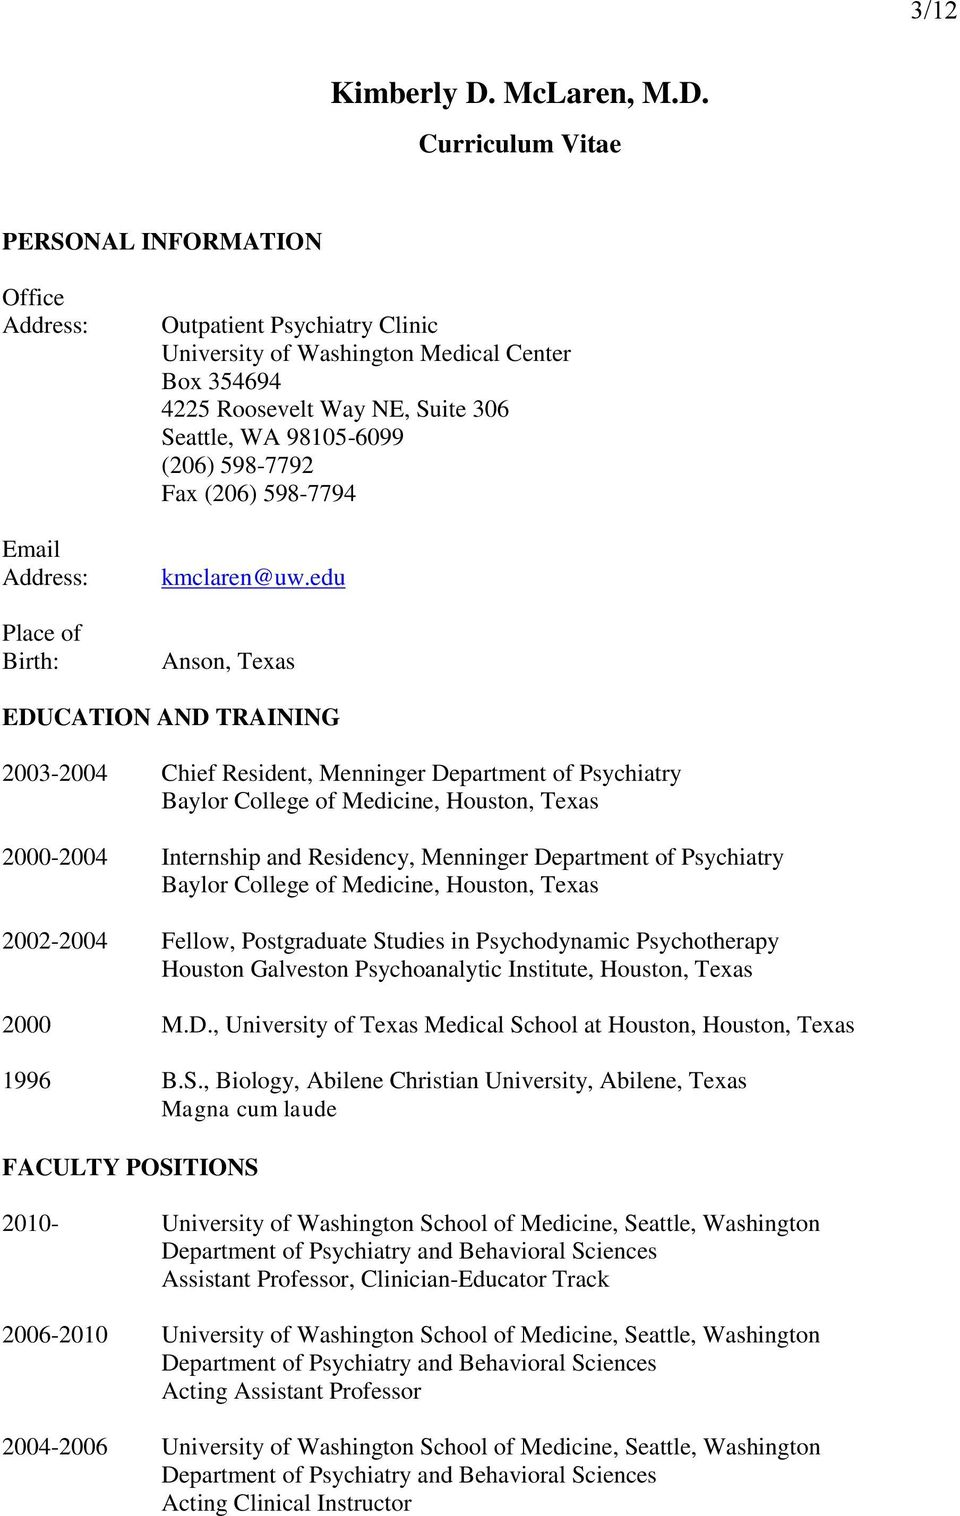 Curriculum Vitae PERSONAL INFORMATION Office Address: Email Address: Place of Birth: Outpatient Psychiatry Clinic University of Washington Medical Center Box 354694 4225 Roosevelt Way NE, Suite 306